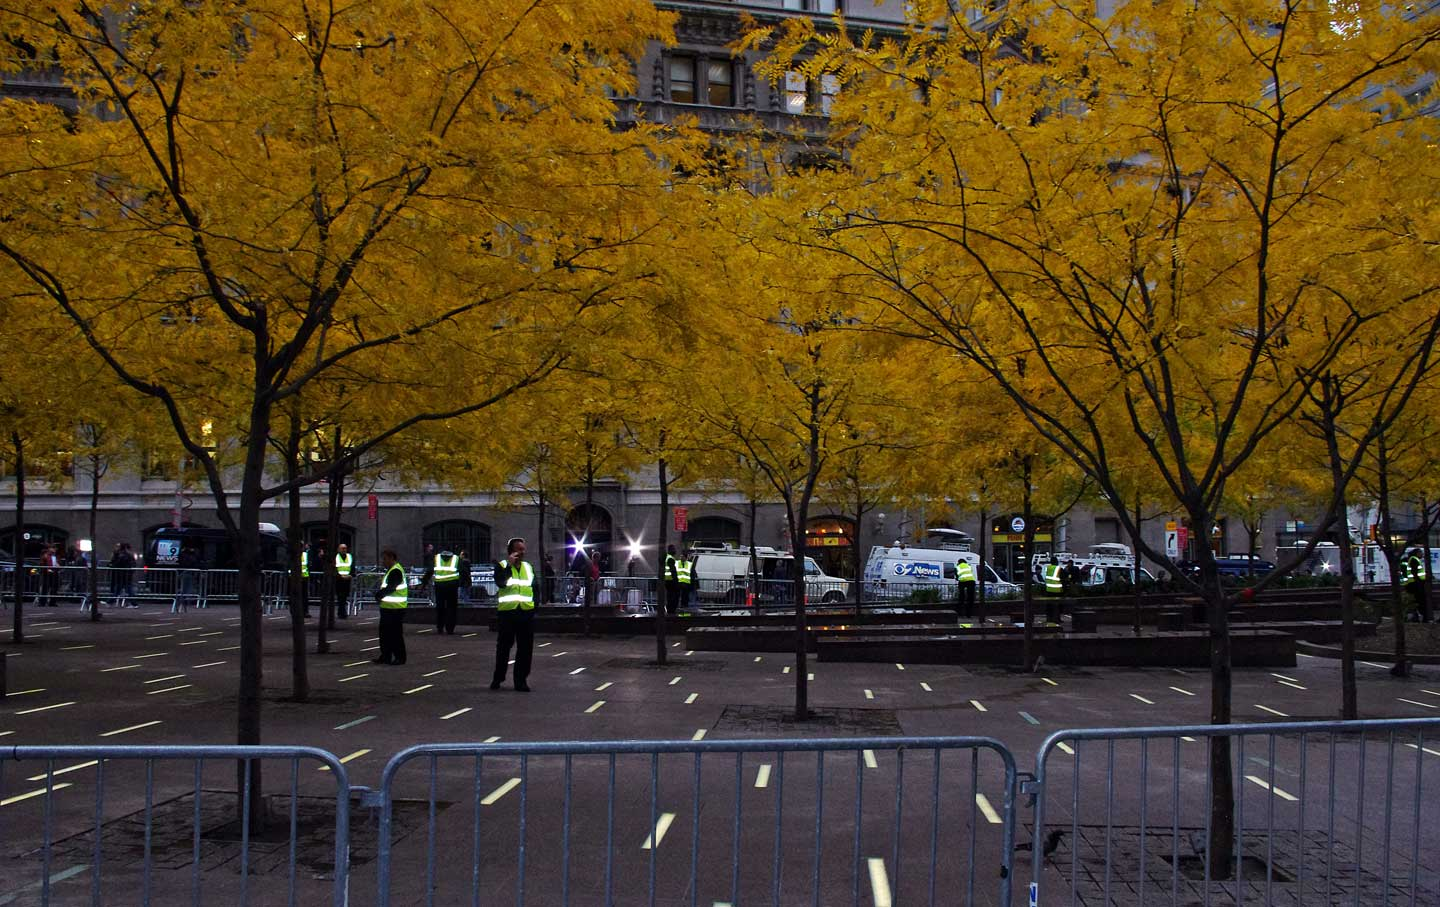 Zuccotti-Park-in-downtown-Manhattan-after-the-eviction-of-Occupy-Wall-Street-protesters-November-15-2011